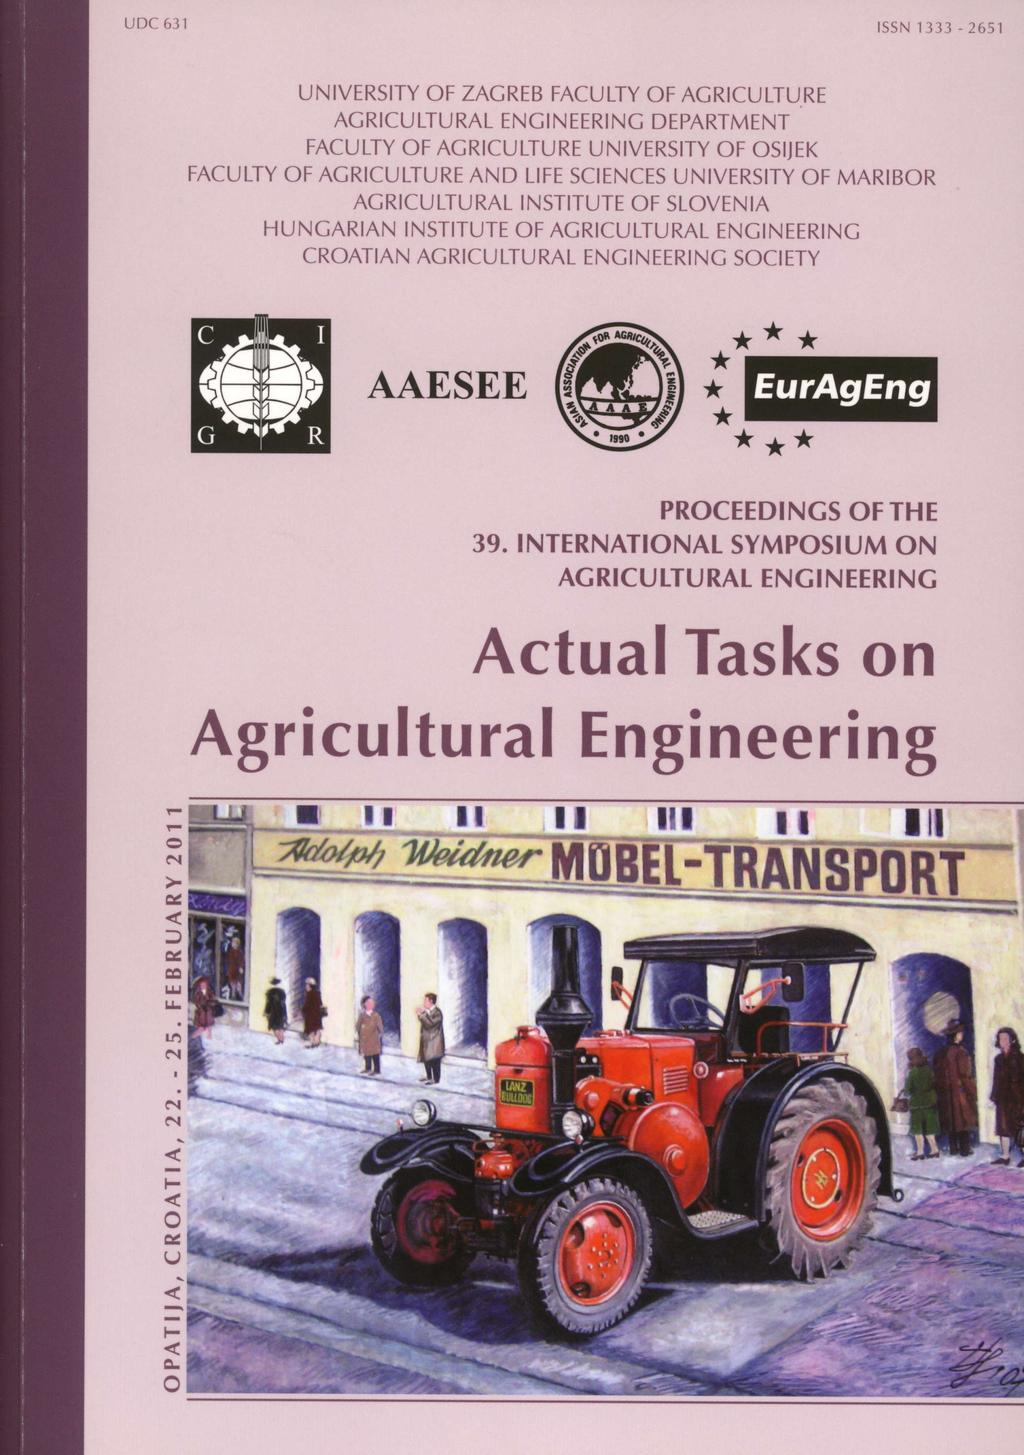 T Actual Tasks On Agricu Ltural Engineering Proceedings Of The 39 With An External Amplifier You Need To Supply A Speakers Sp2003 Transcription